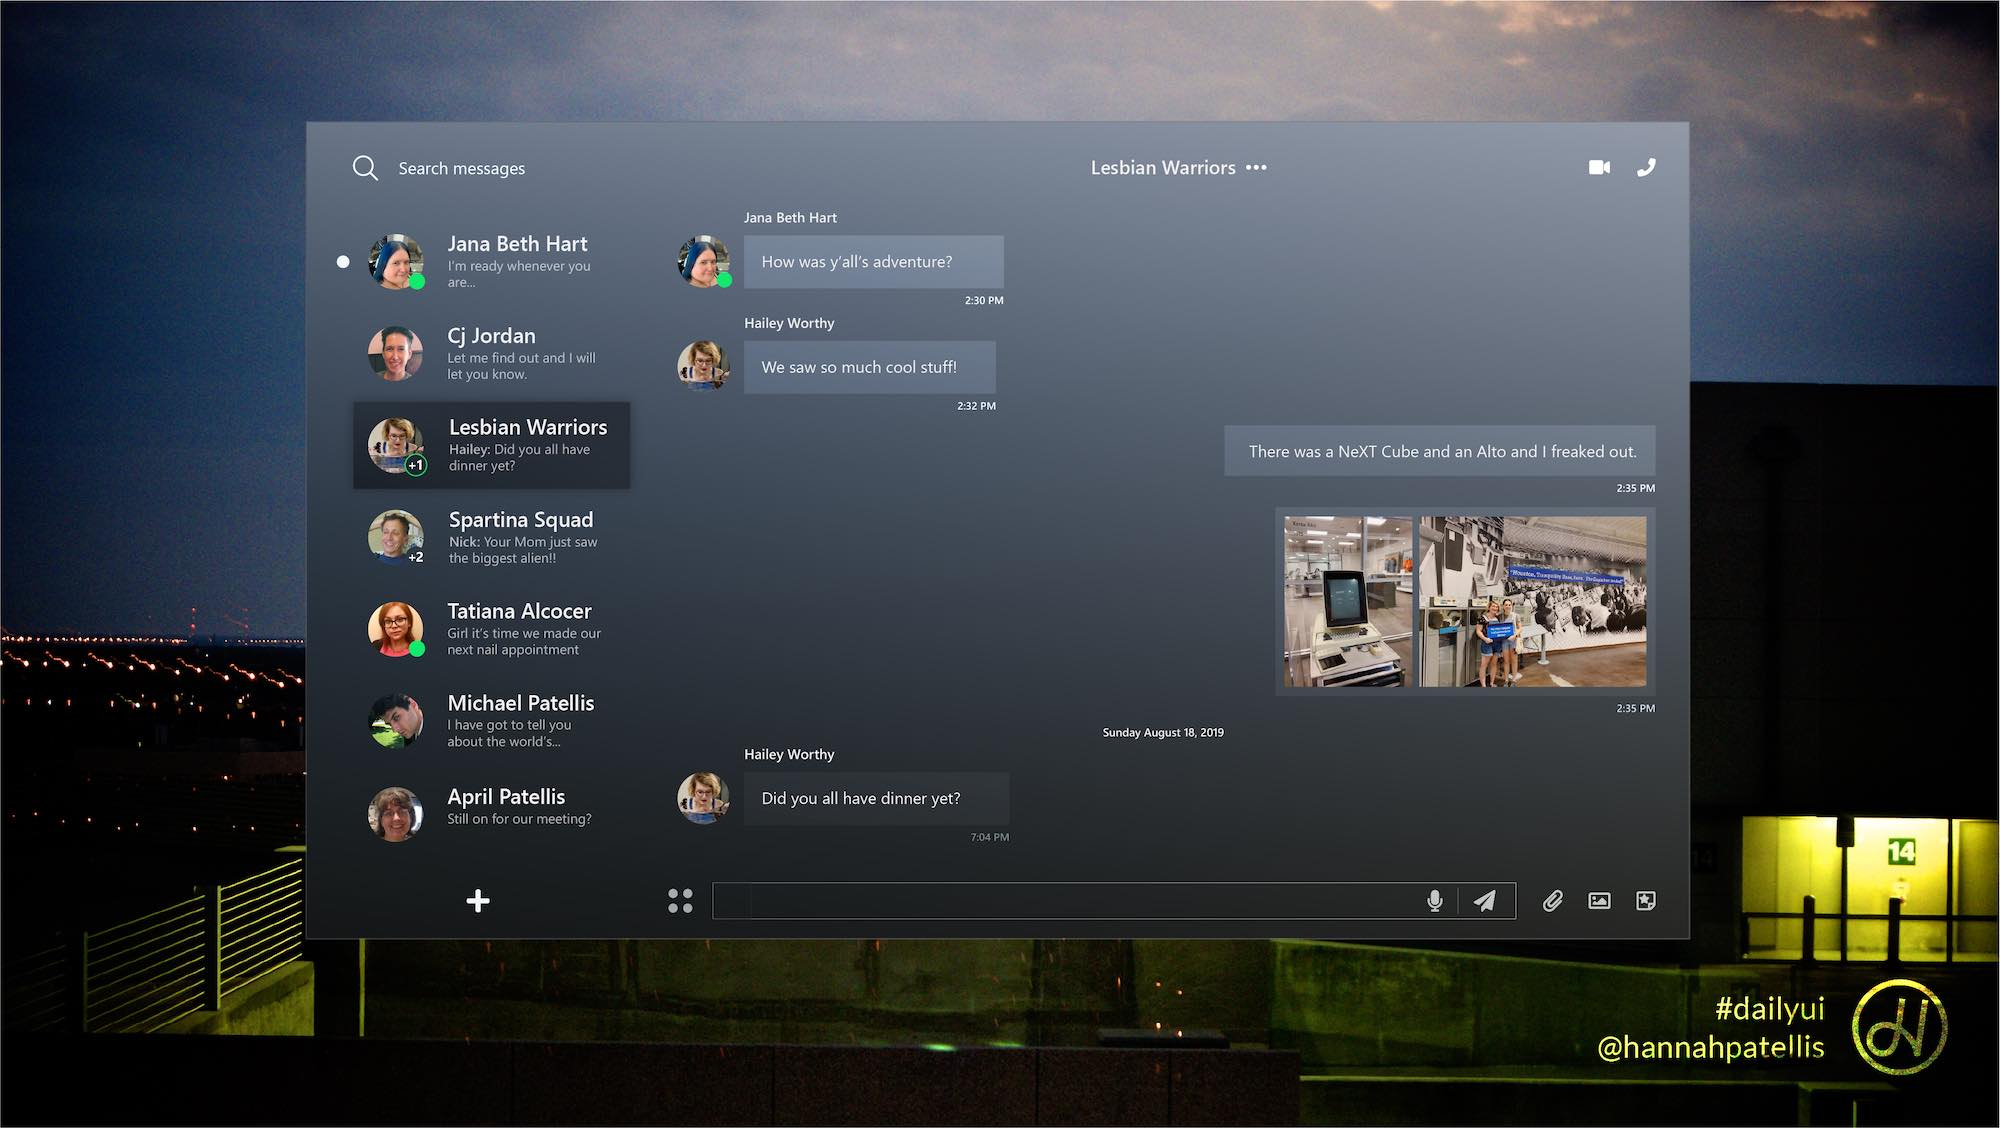 Direct messaging user interface design